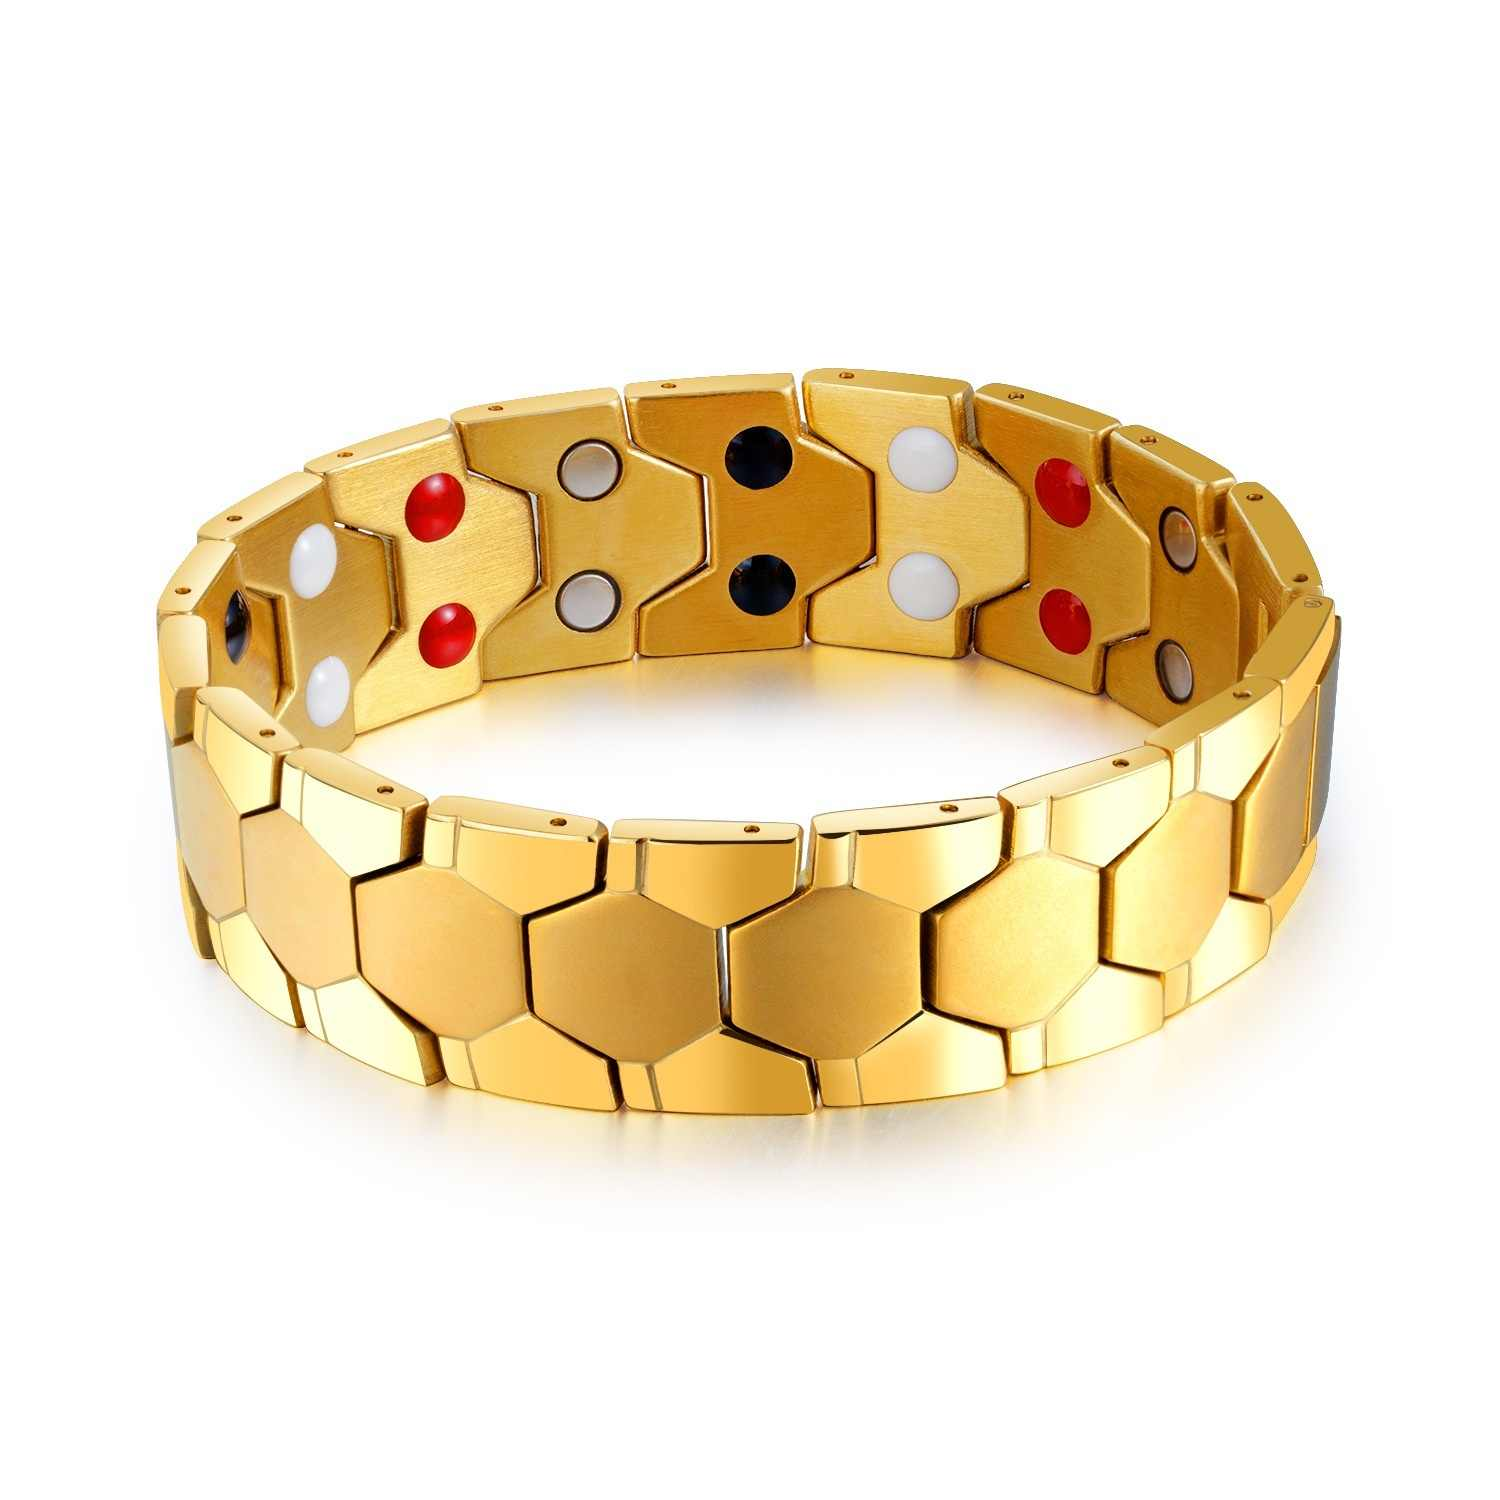 Magnetic Gold Bracelet Therapeutic Health Energy Magnetic Bracelet Bangle 4 In 1 Germanium Powder Pain Relief for Arthritis